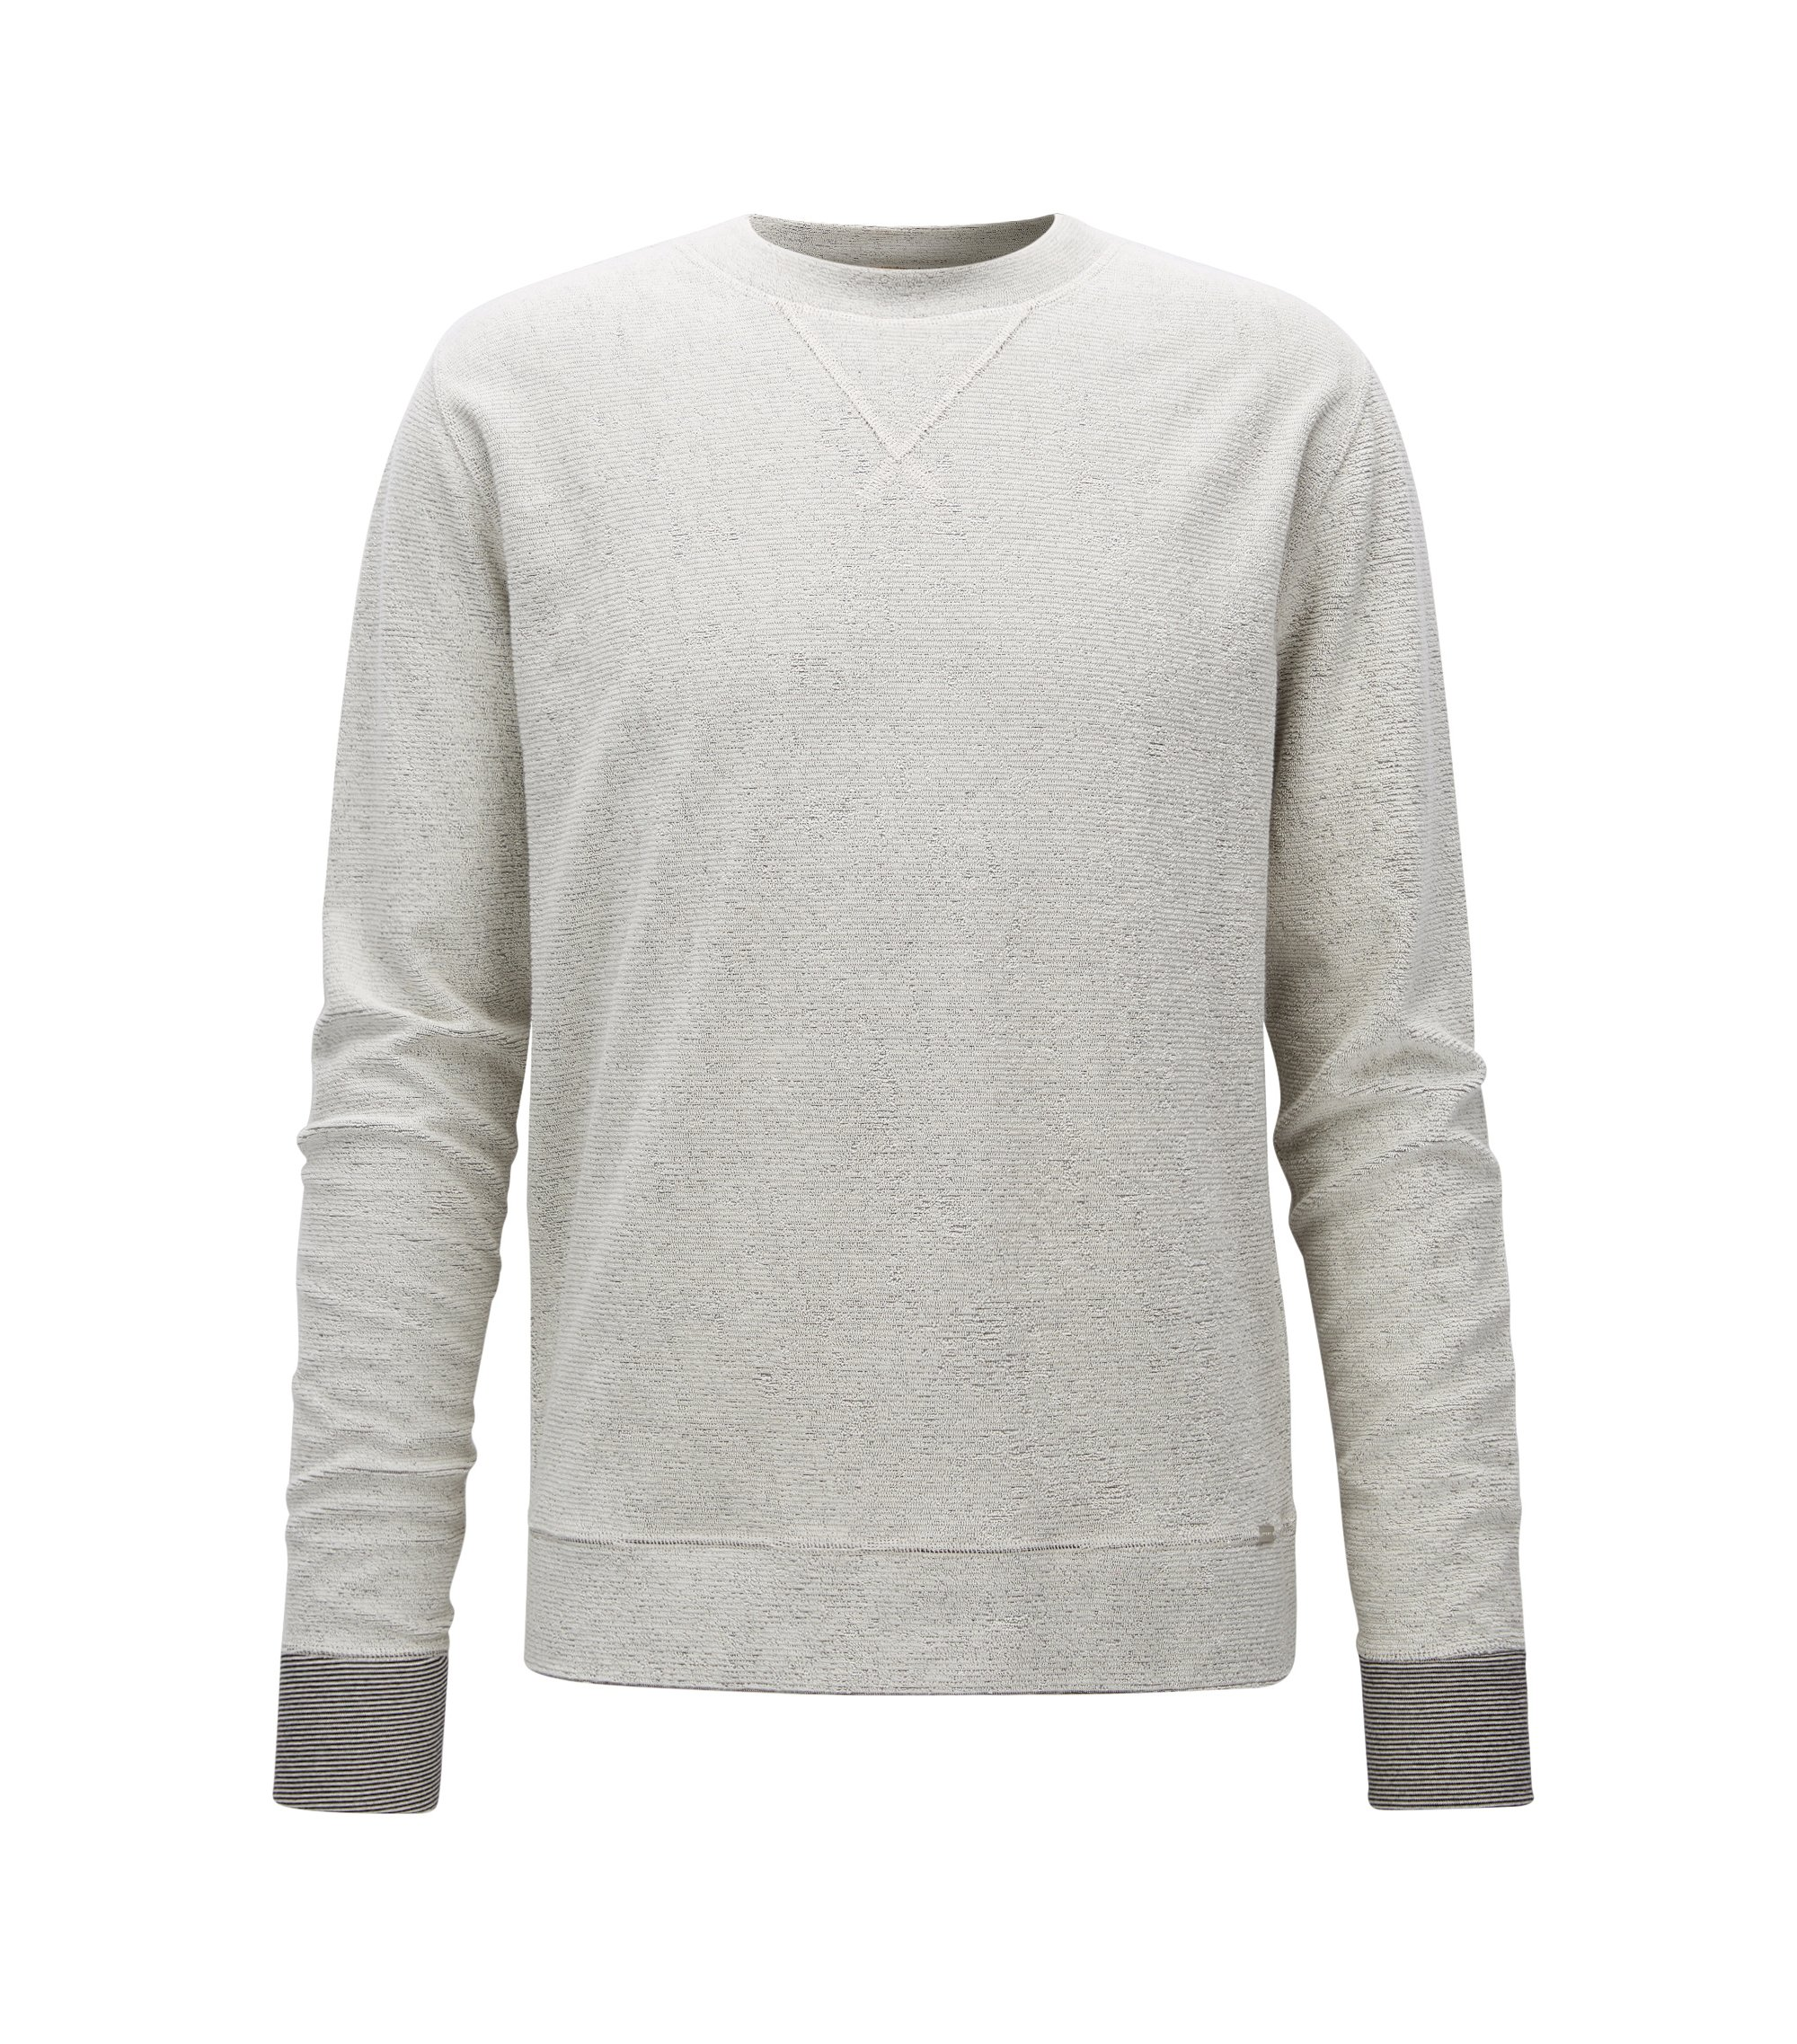 Relaxed-fit reversible sweatshirt in cotton, Open White